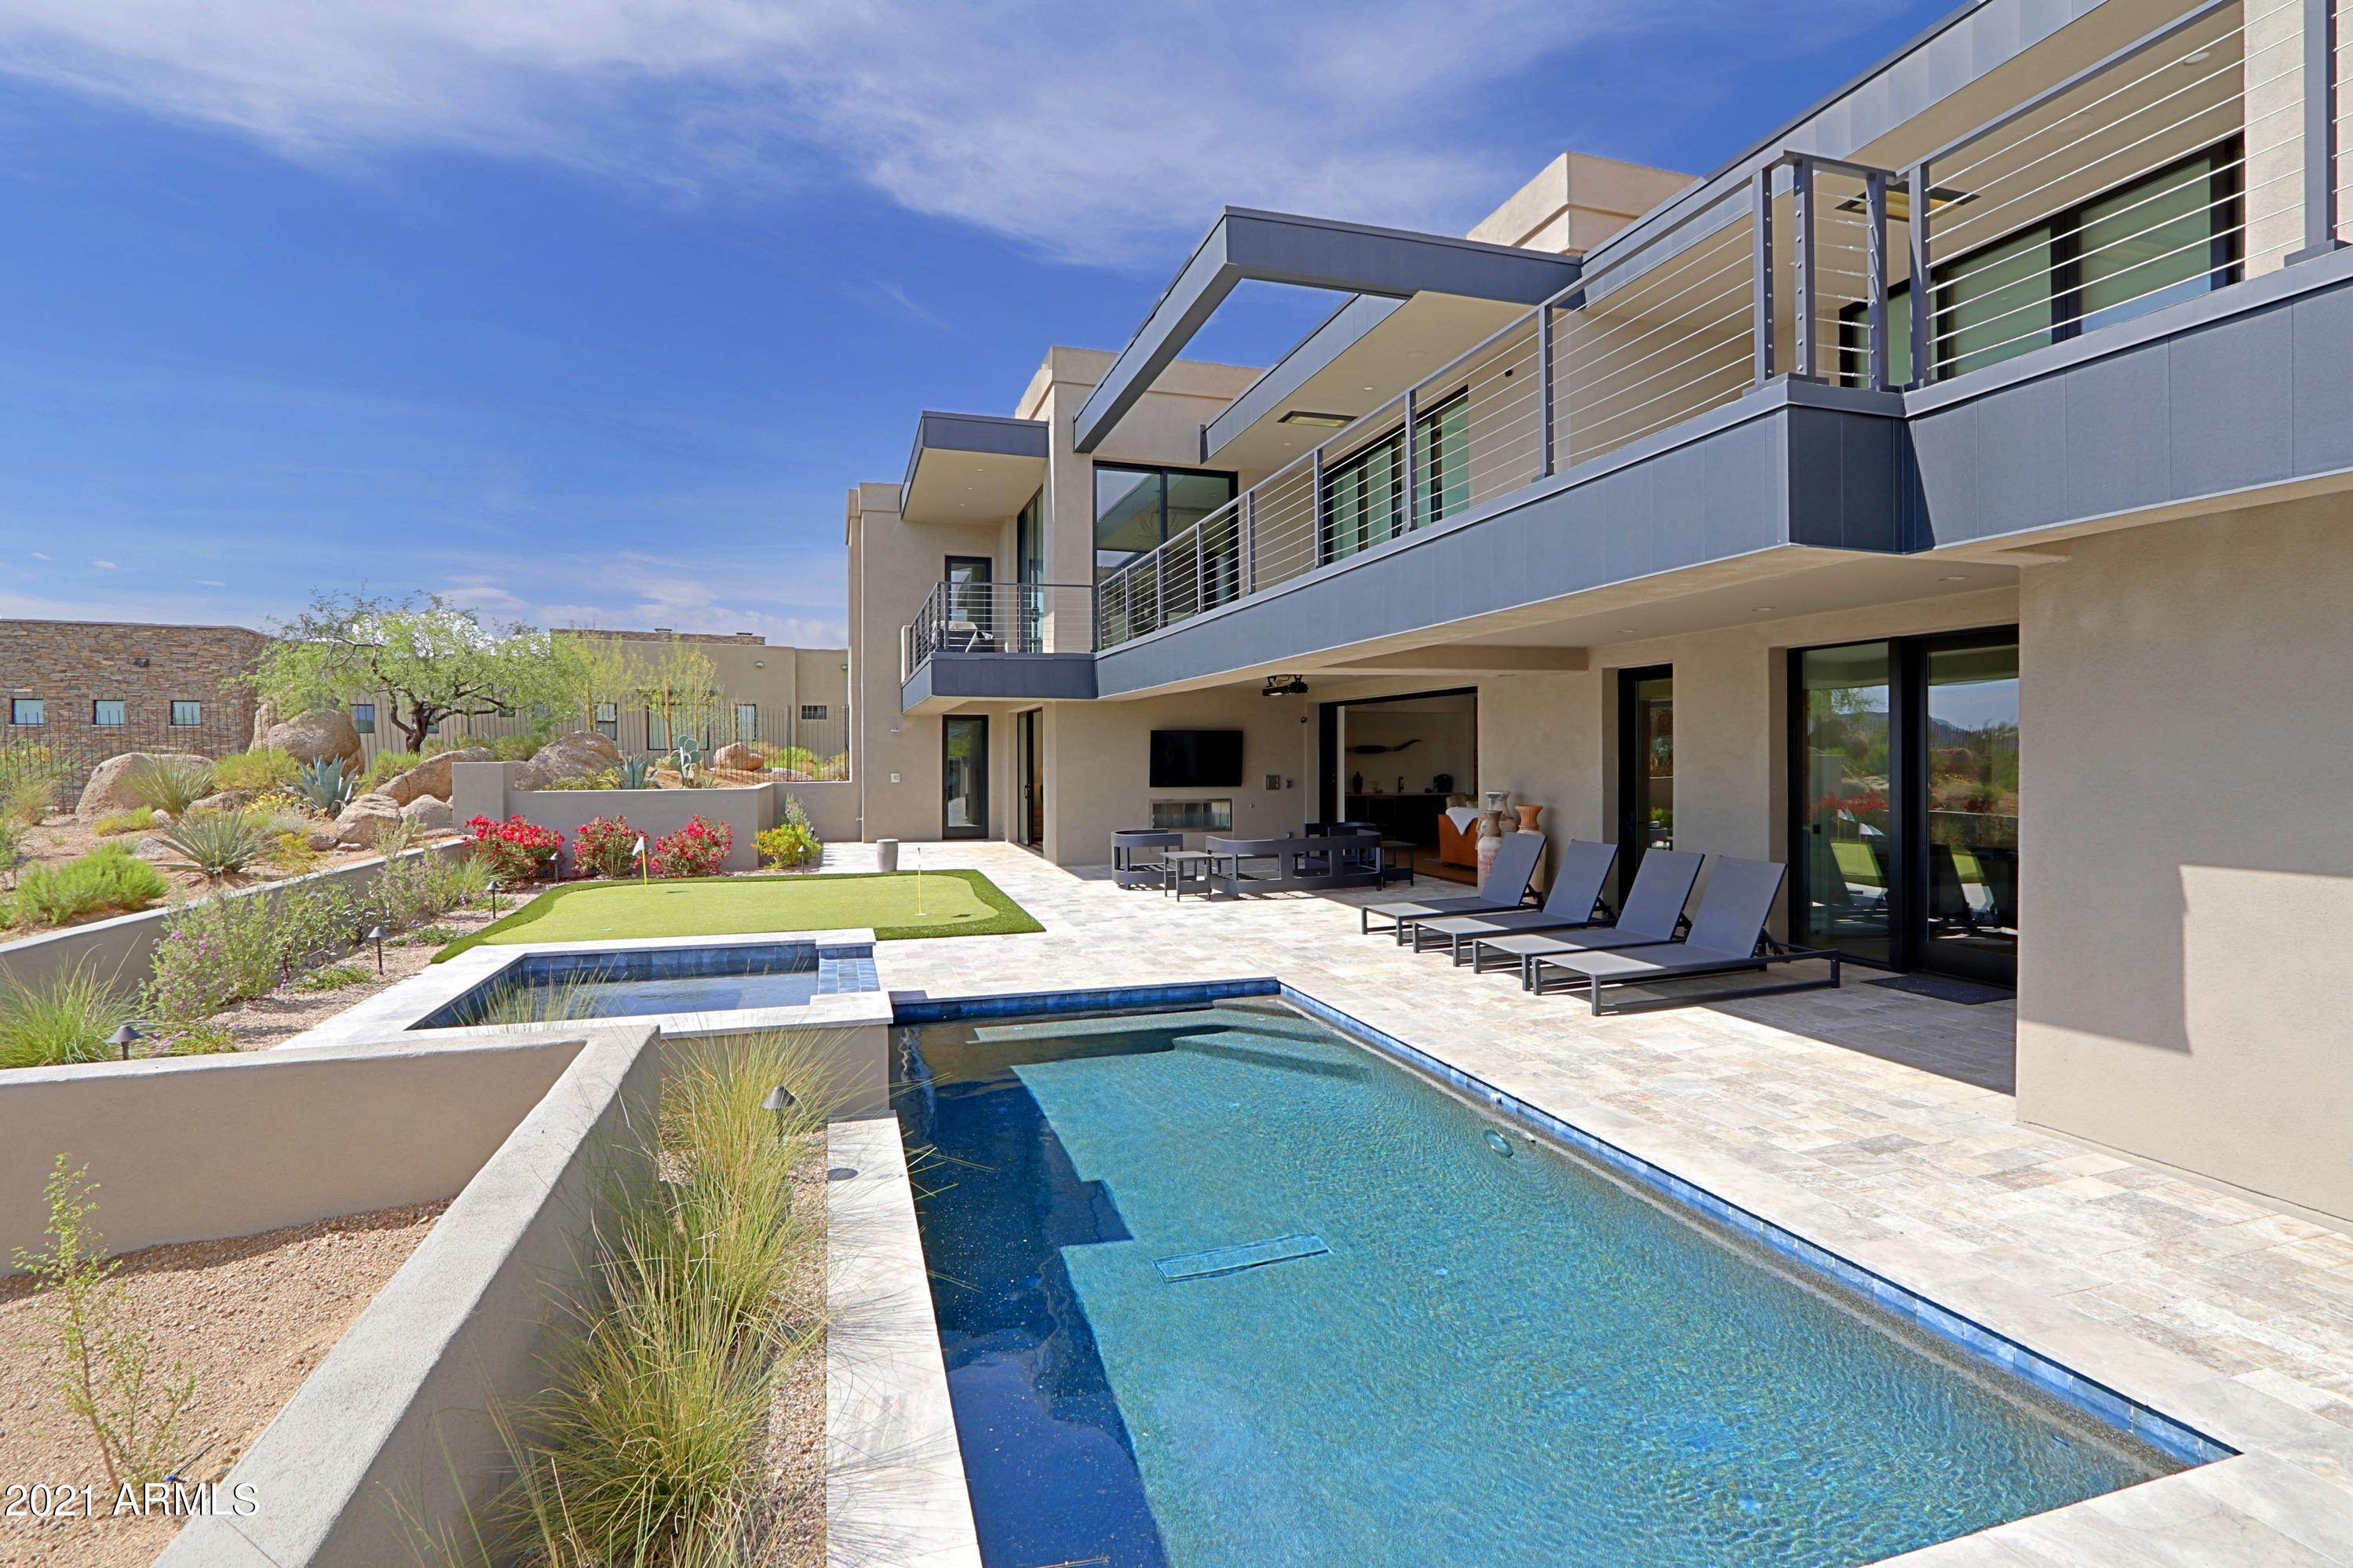 40420 N 109TH Place, Scottsdale, AZ 85262, 4 Bedrooms Bedrooms, ,Residential Lease,For Rent,40420 N 109TH Place,6246164